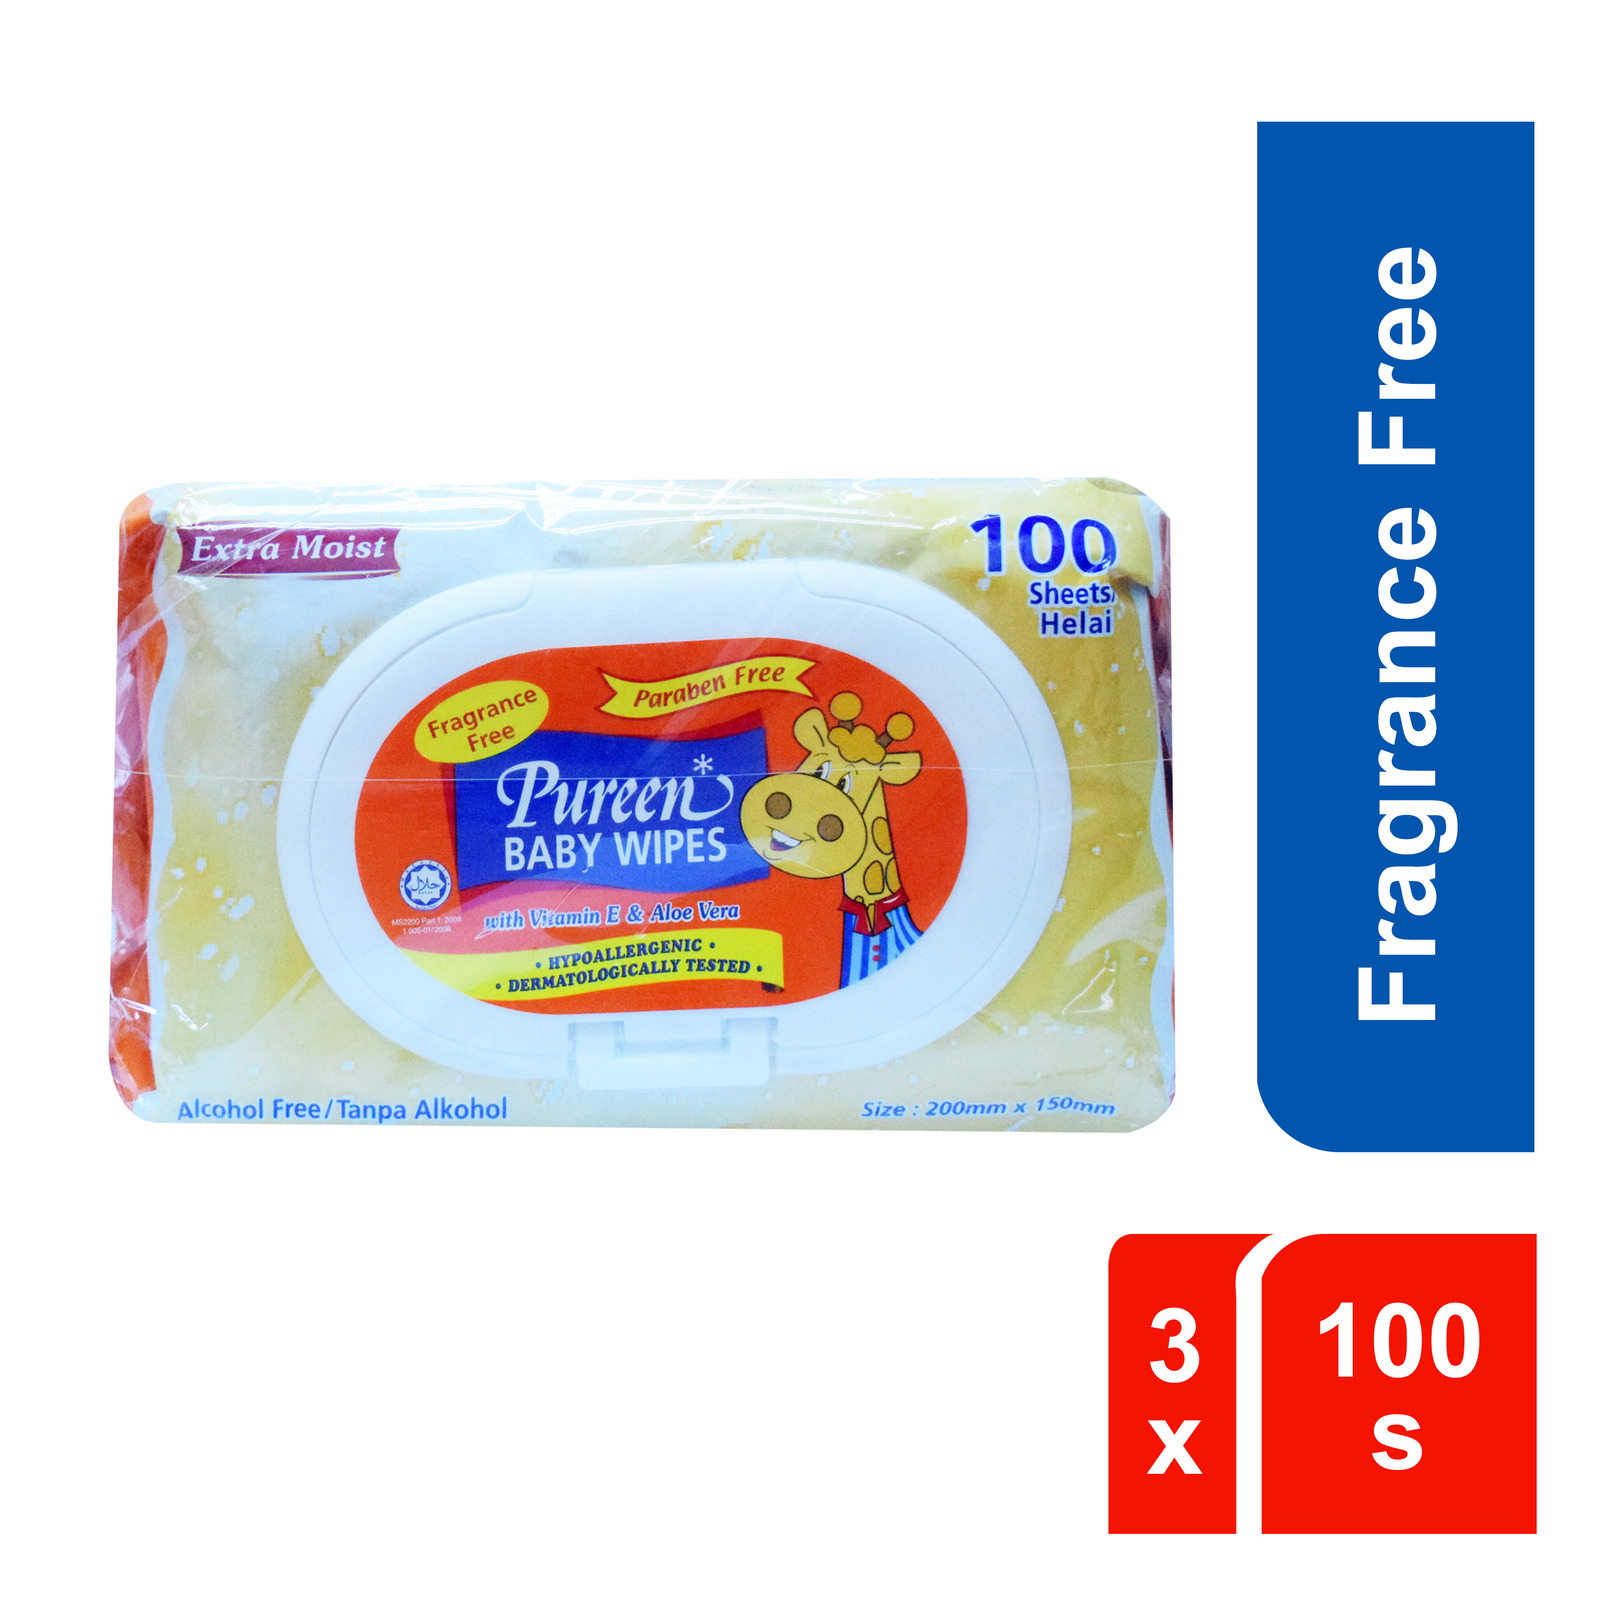 Pureen Fragrance Free Baby Wipes 3 x 100s